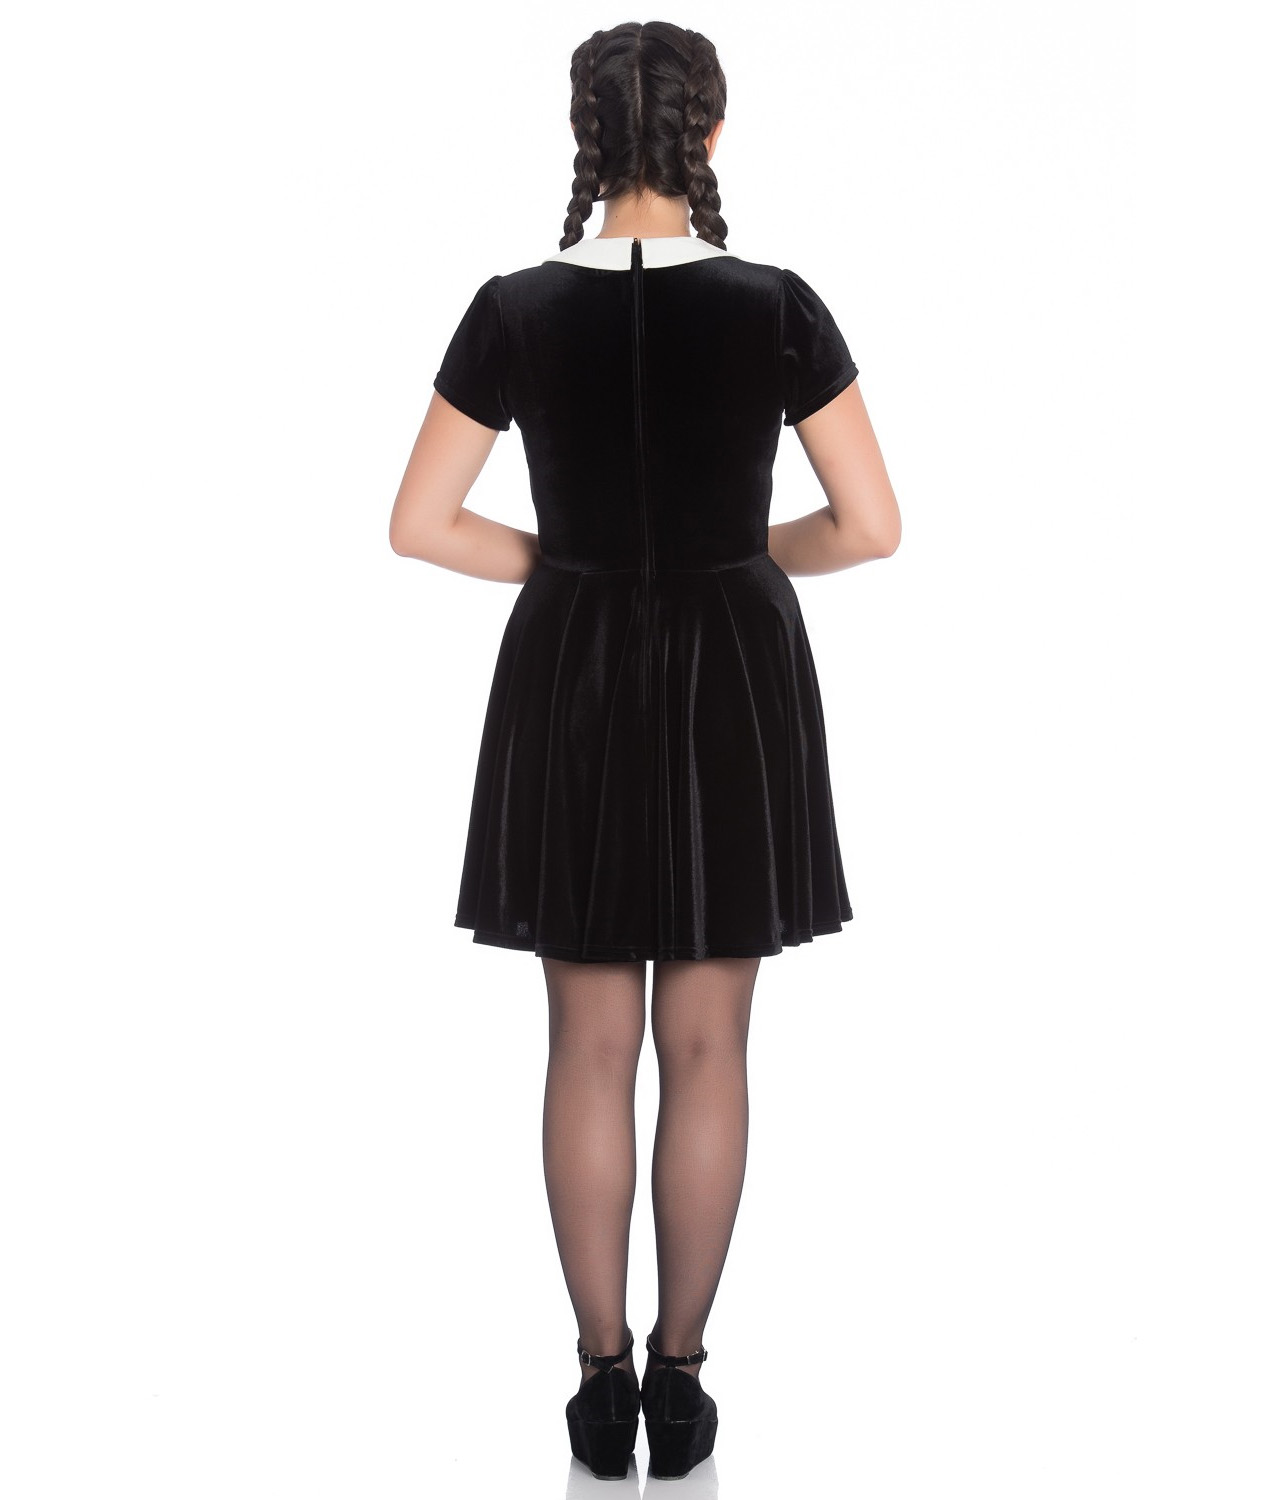 Hell-Bunny-Gothic-Mini-Skater-Dress-MISS-MUFFET-Spiders-Black-Velvet-All-Sizes thumbnail 9